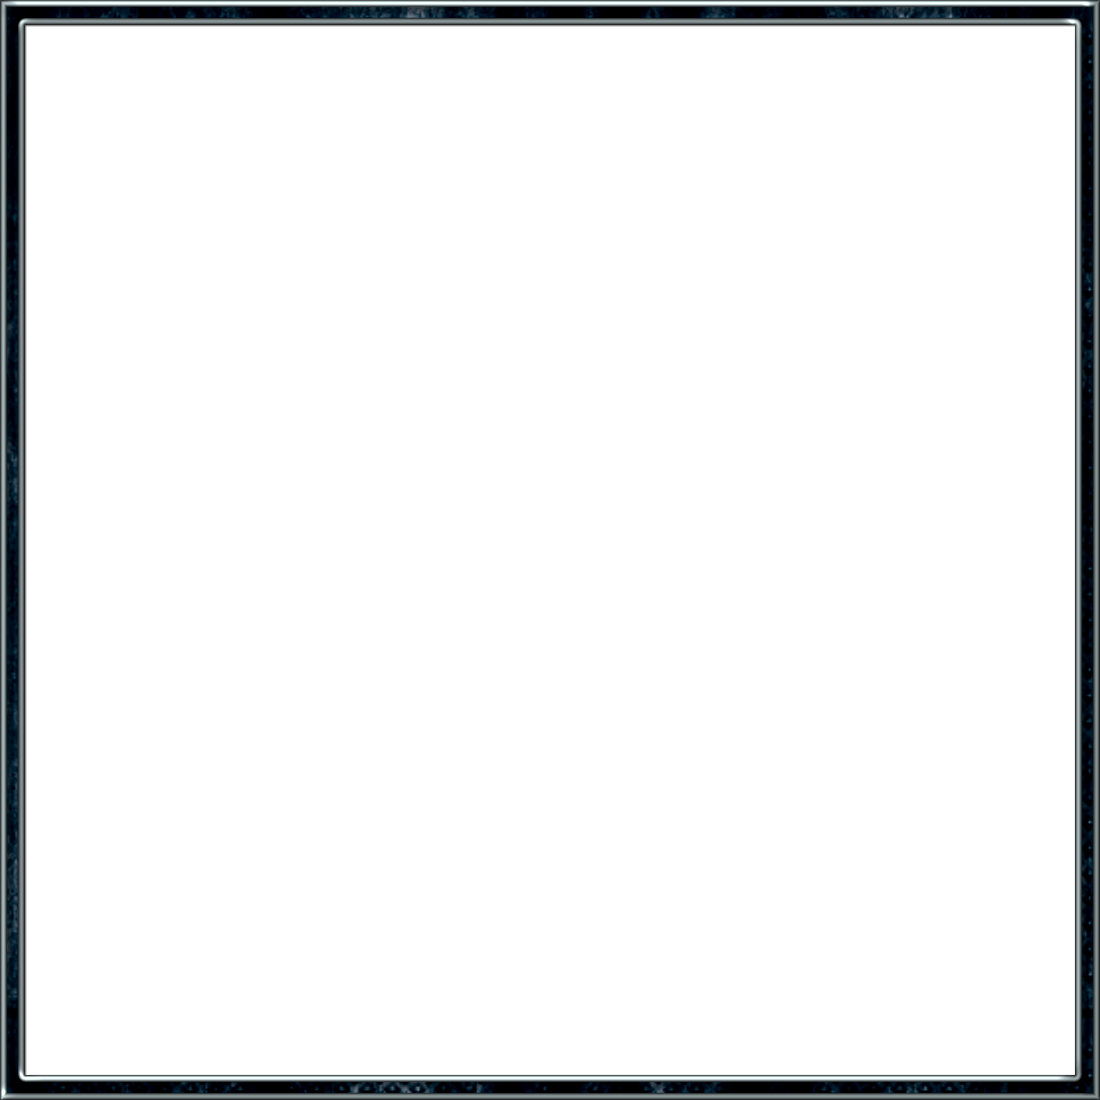 Images of black spacehero. Square frame png